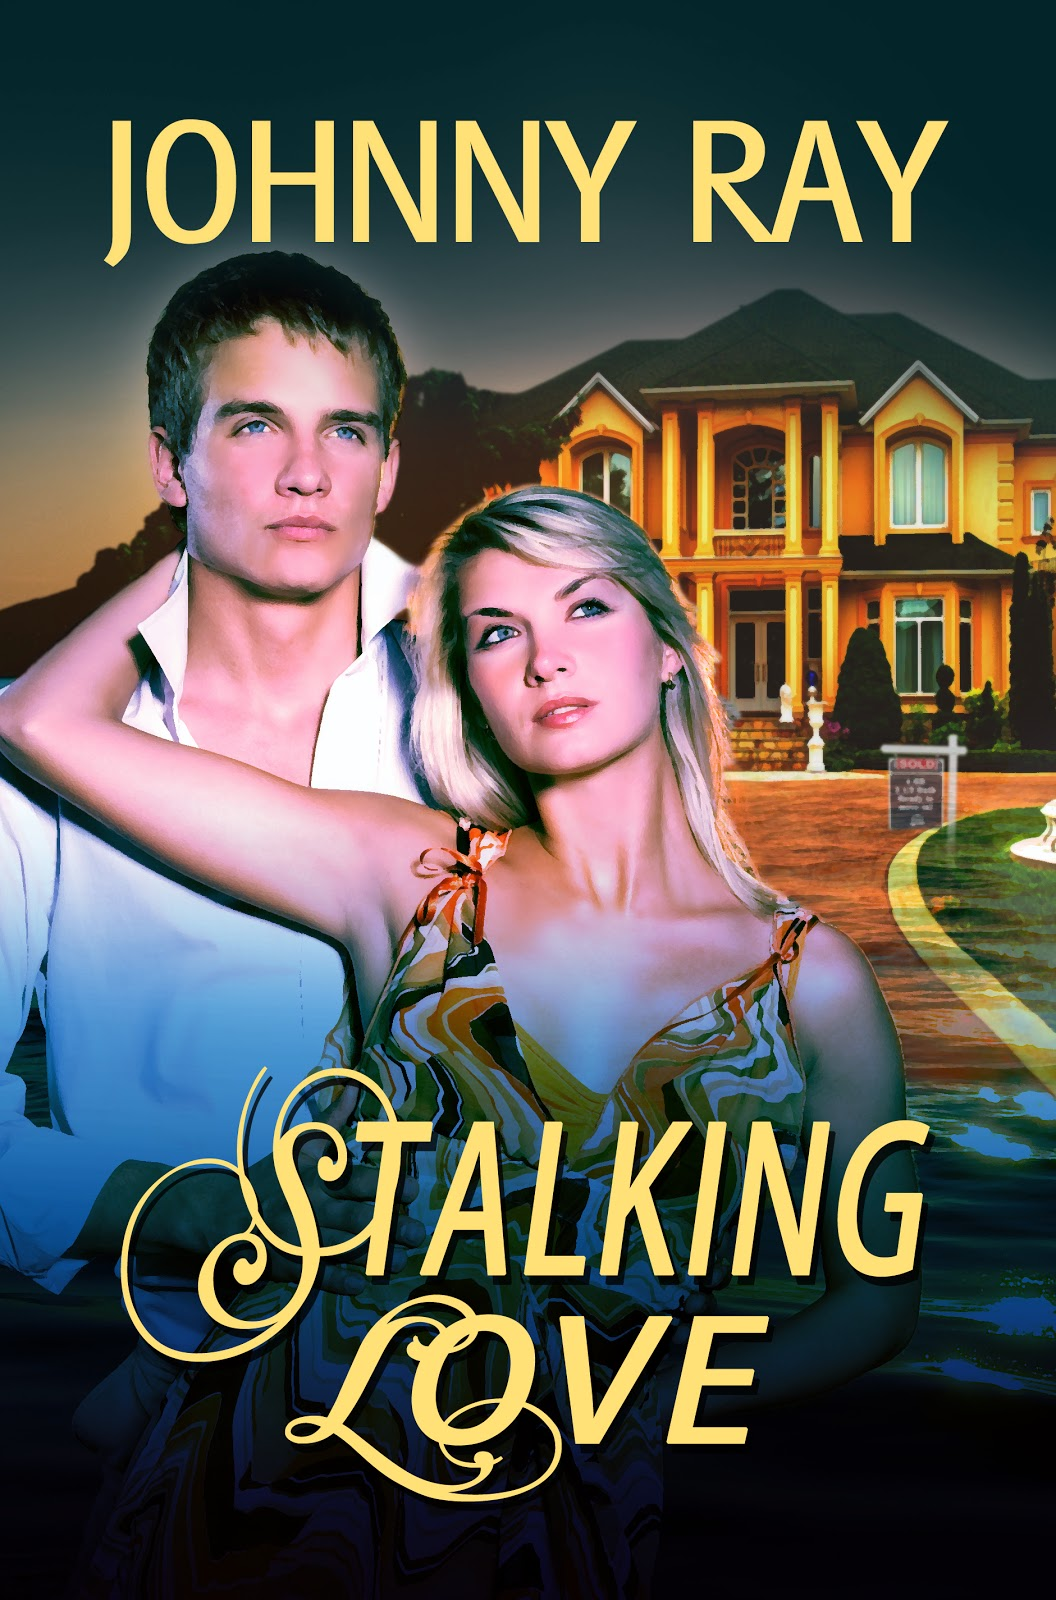 STALKING LOVE http://www.amazon.com/gp/product/B00AP7VM3W/ref=as_li_ss_tl?ie=UTF8&camp=1789&creative=390957&creativeASIN=B00AP7VM3W&linkCode=as2&tag=johray-20